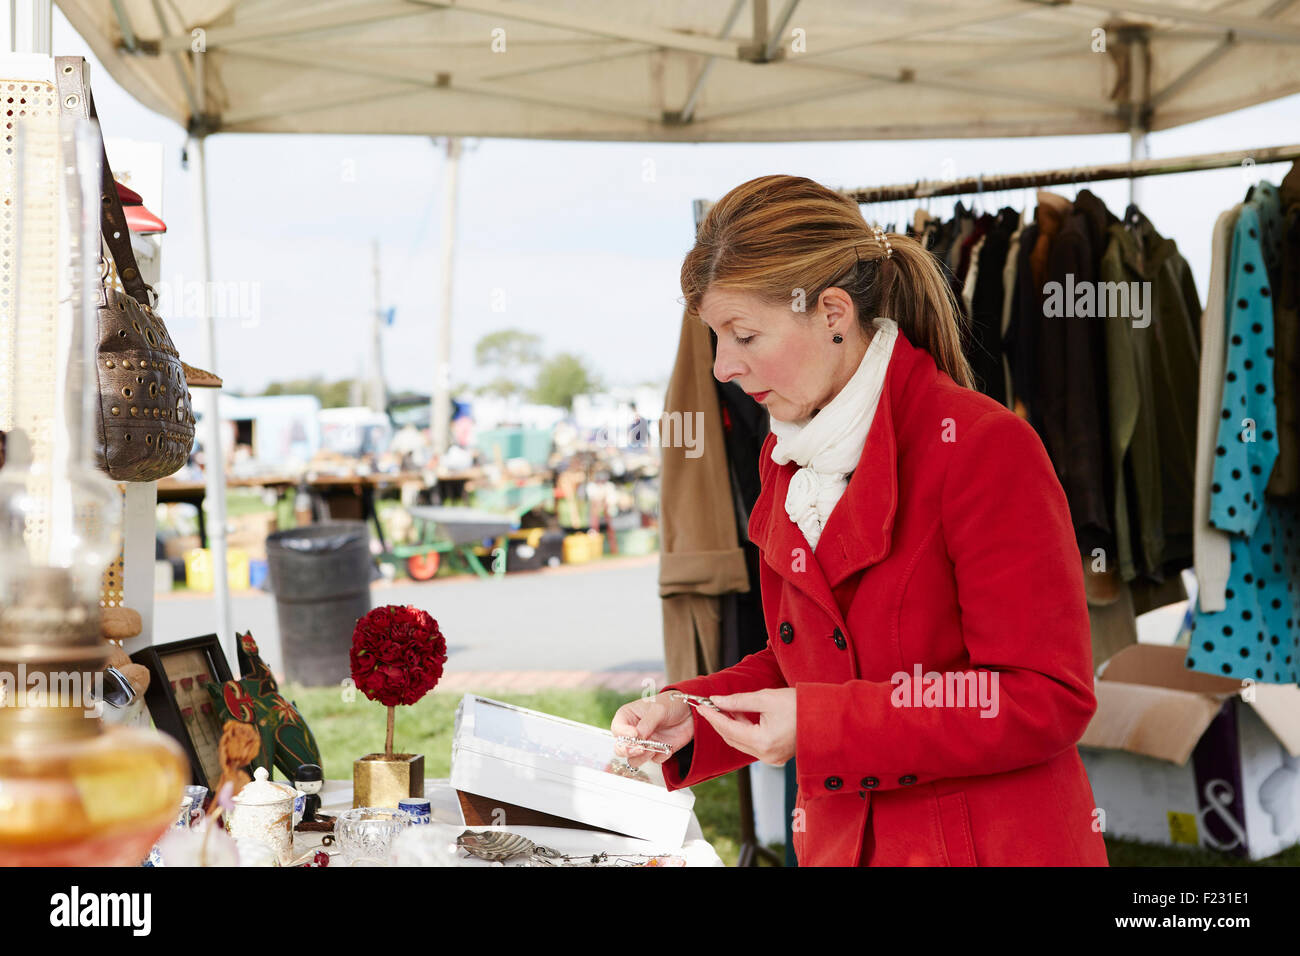 A mature woman bargain hunter browsing through vintage jewellery items at a clothing stall at a flea market. - Stock Image